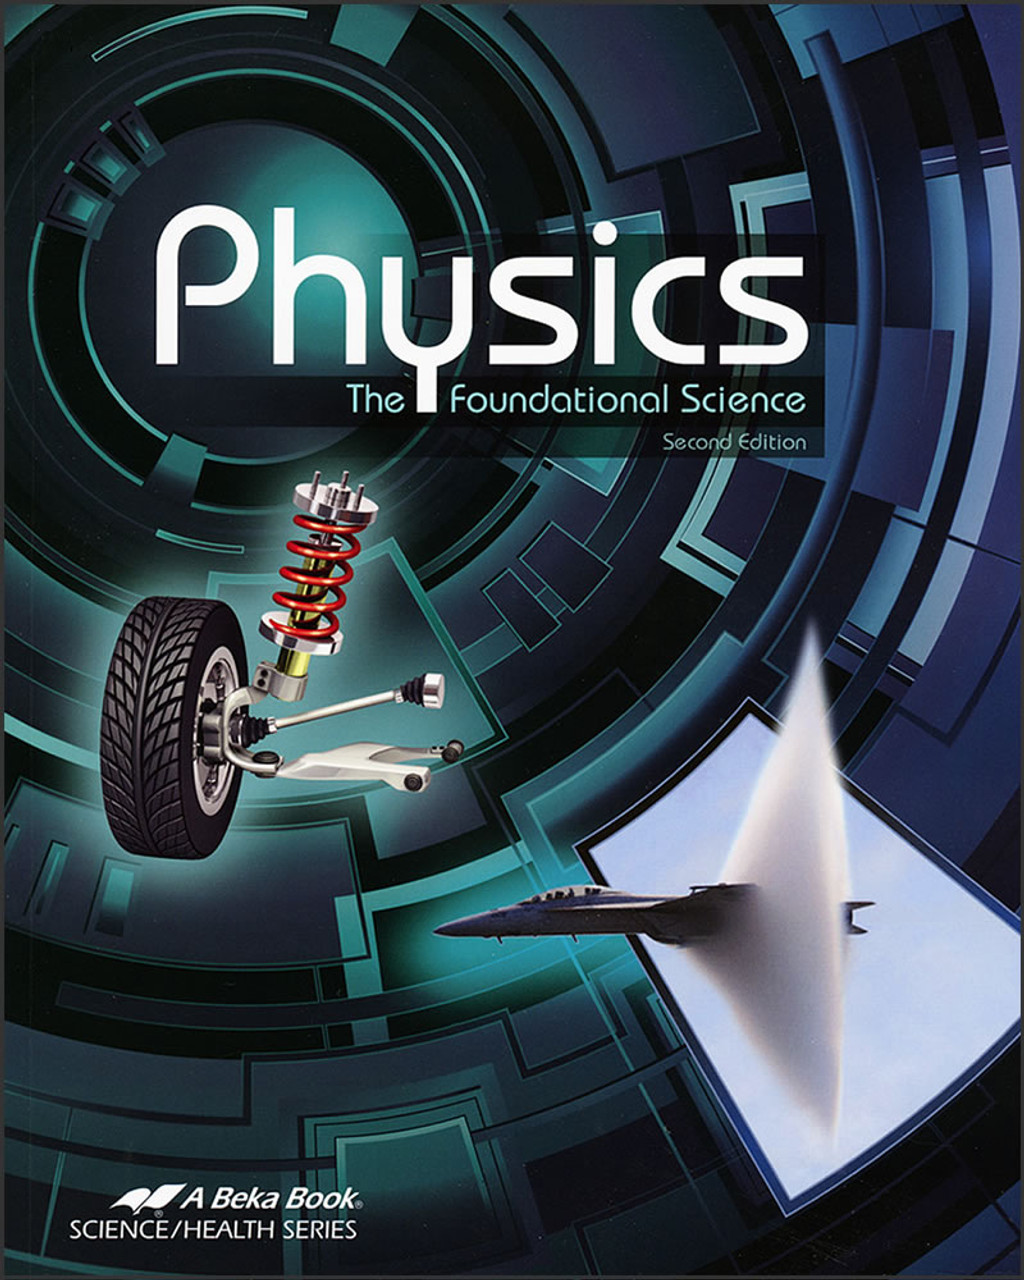 Physics: The Foundational Science, 2nd edition